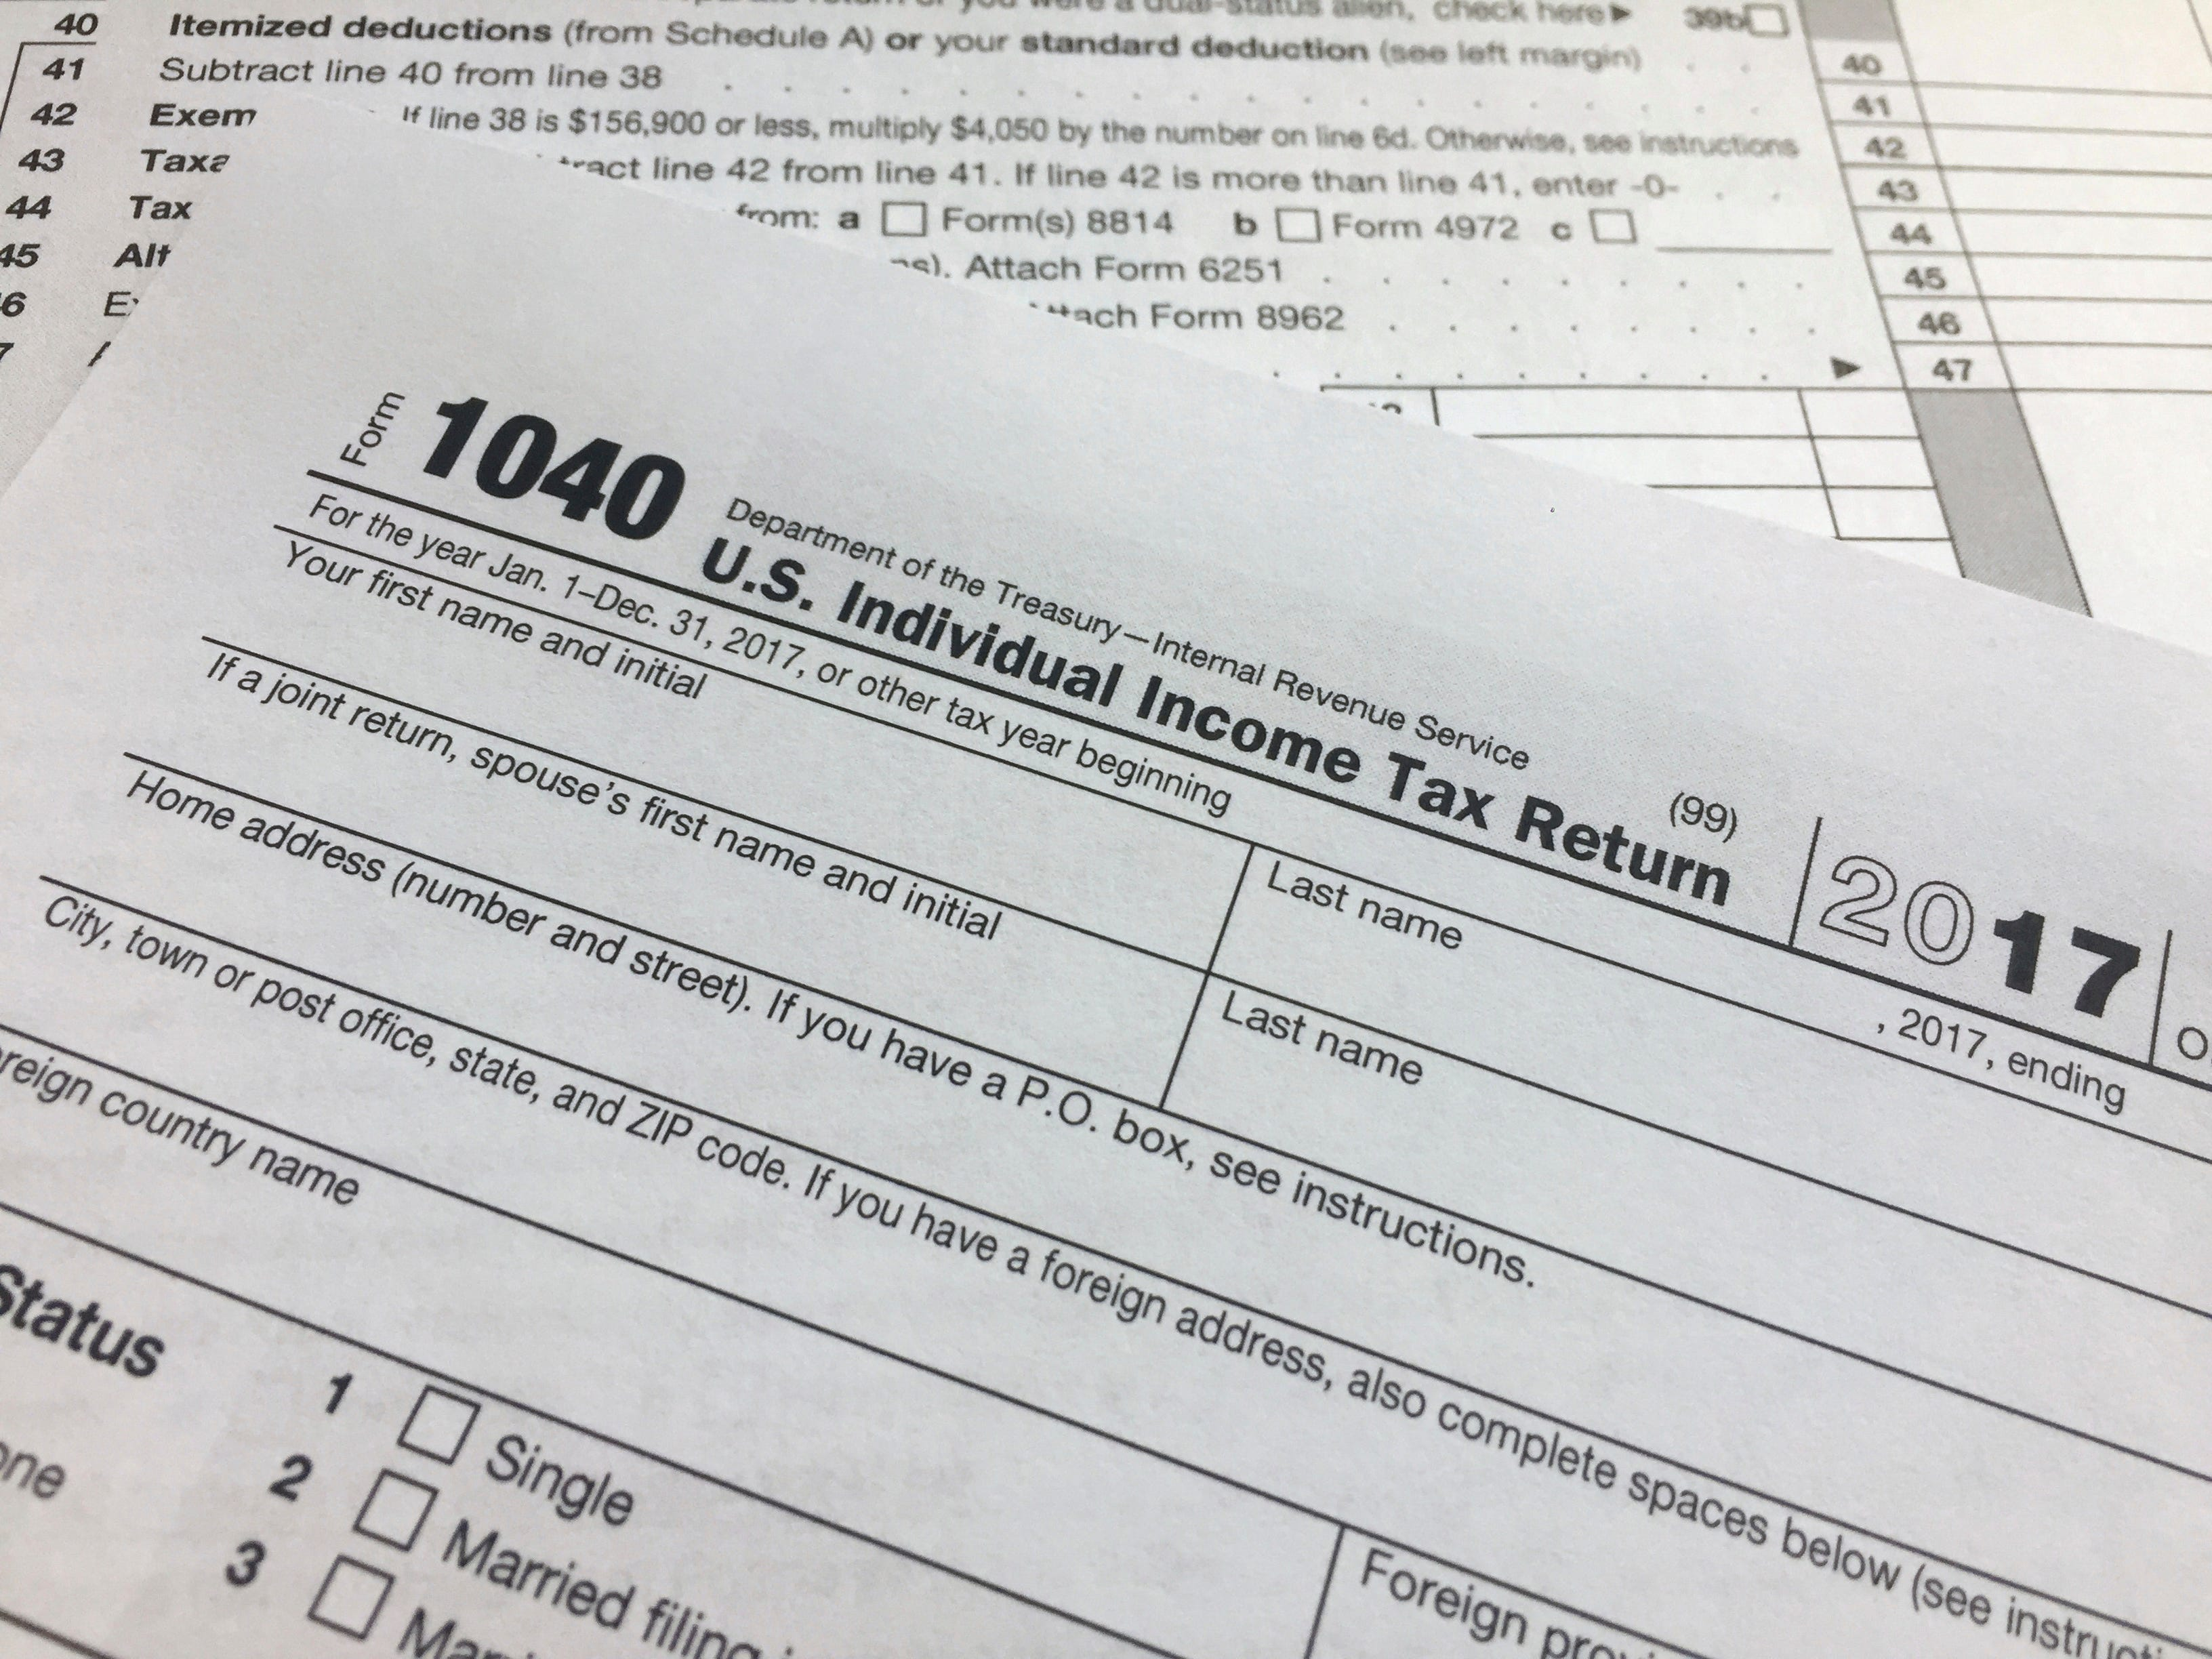 IRS to waive under-withholding penalties for some taxpayers after Trump tax changes